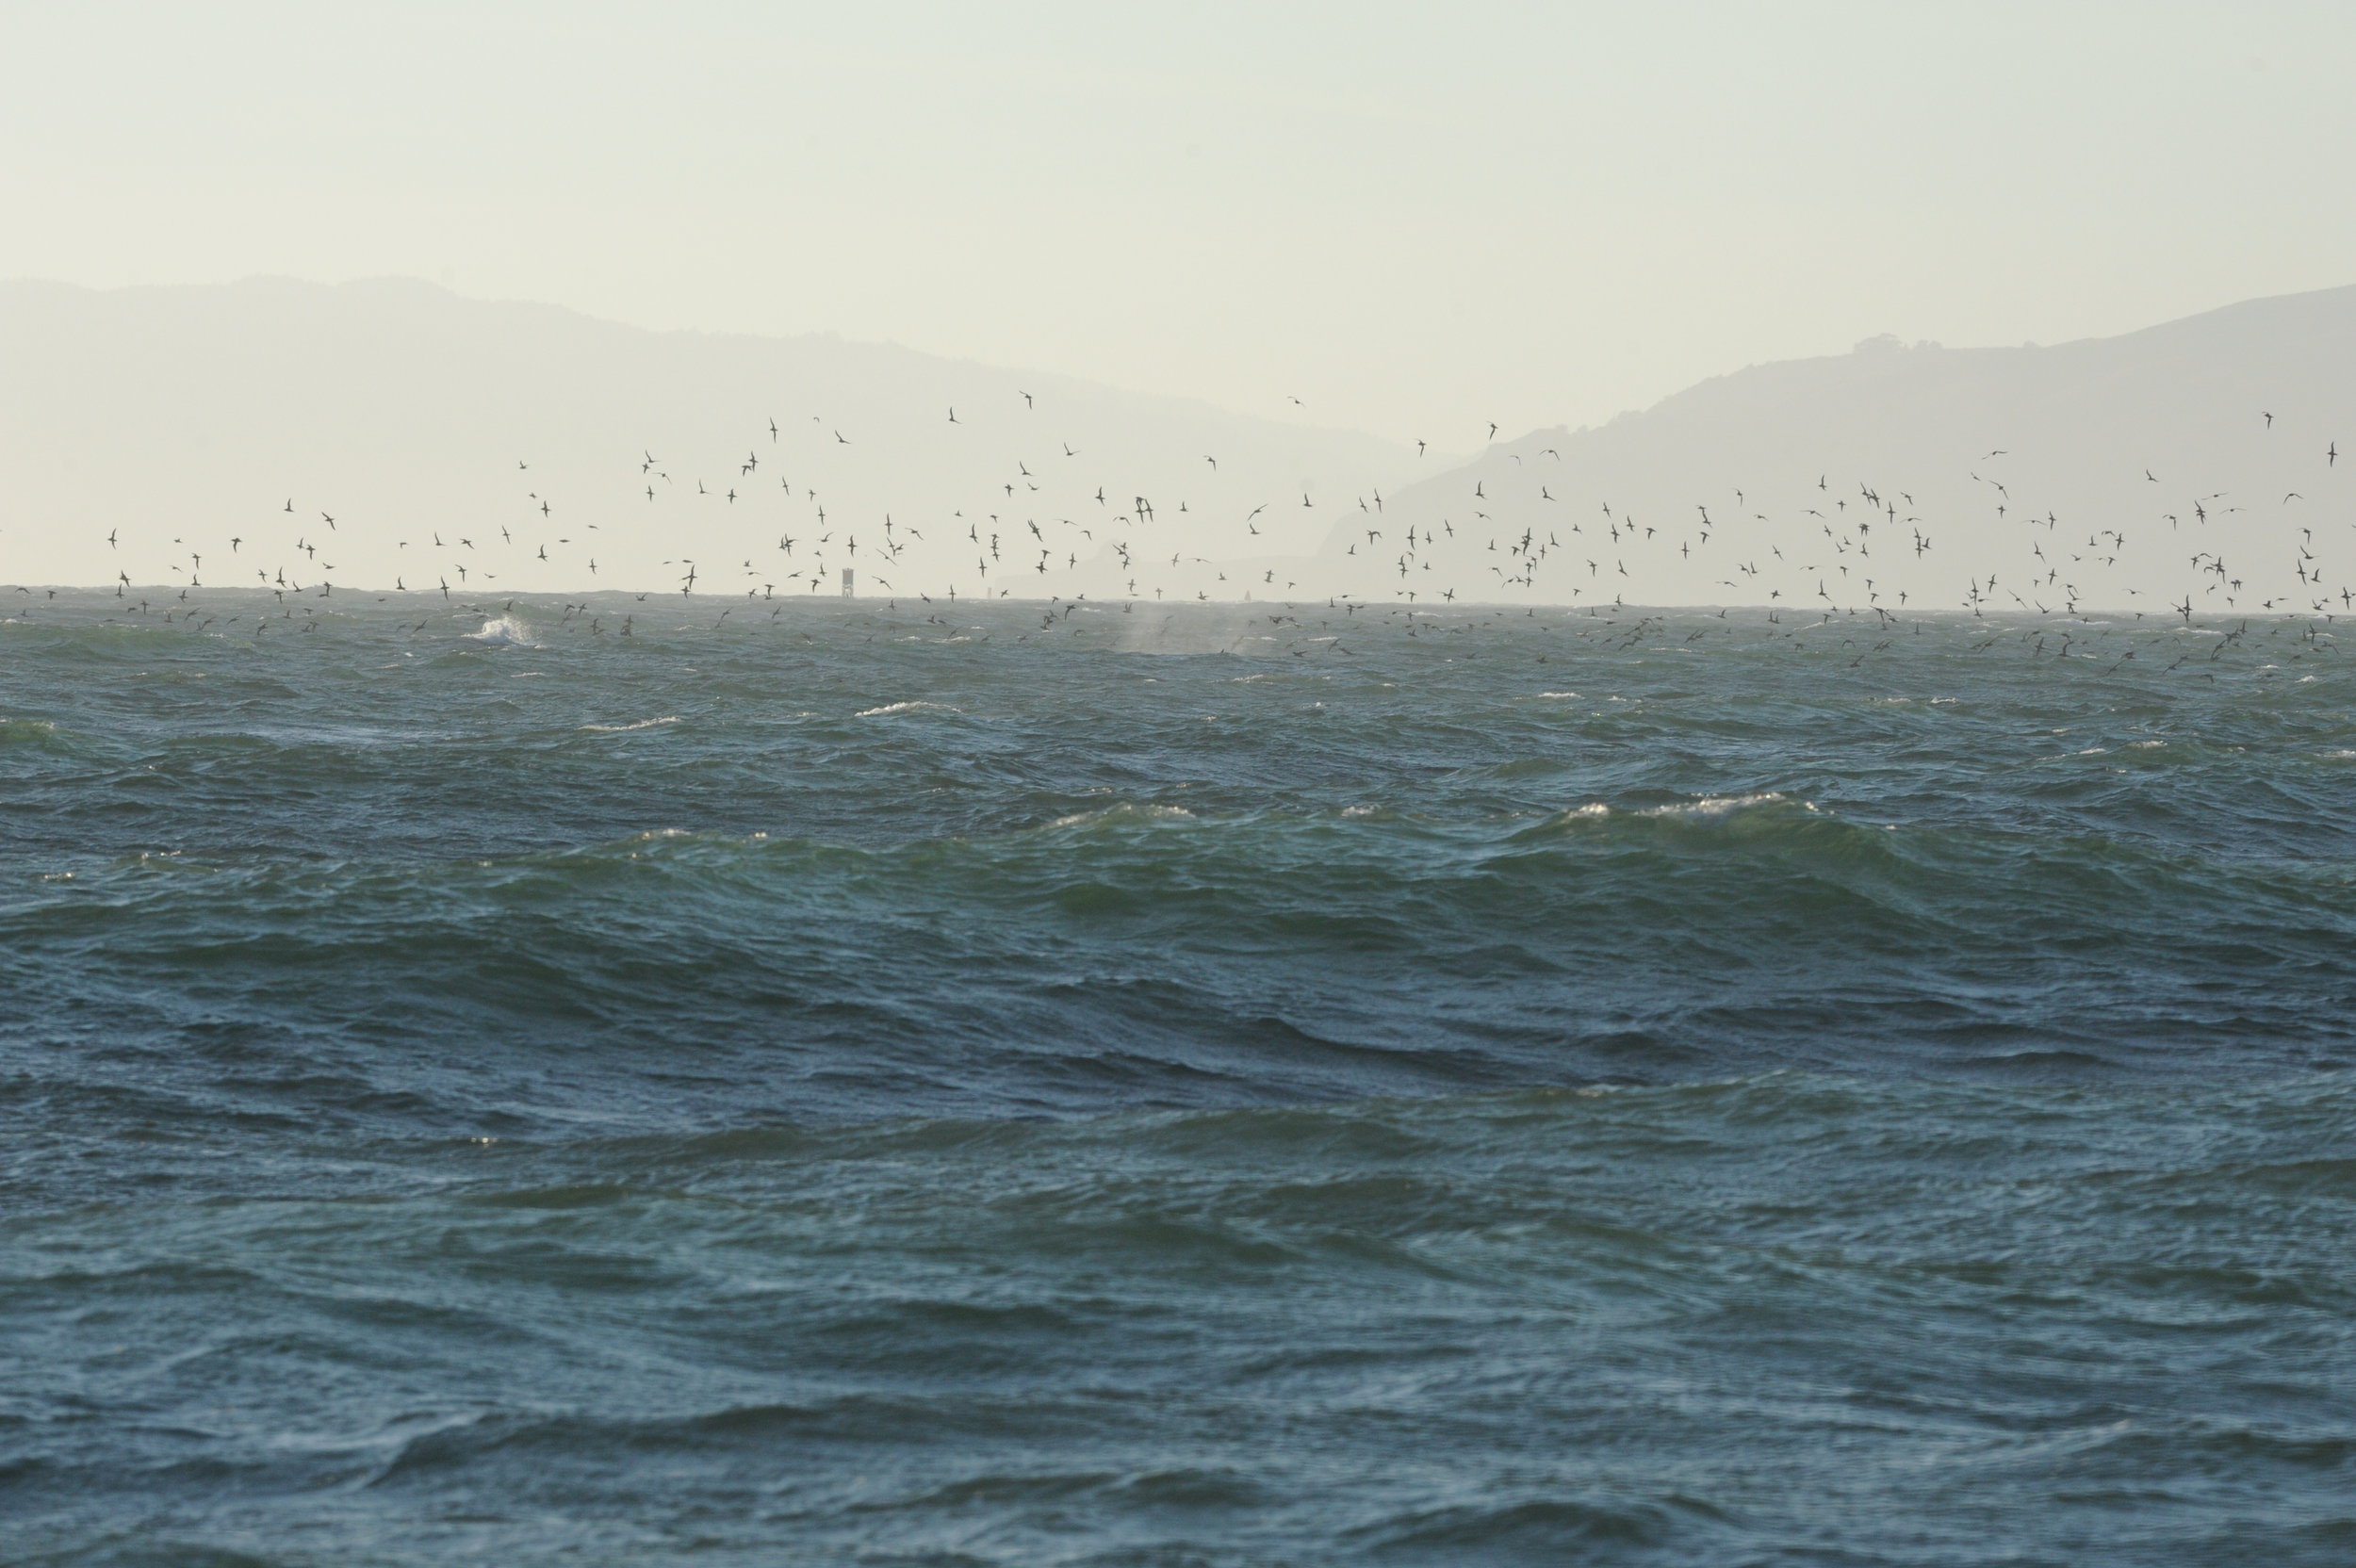 Whale spout surrounded by shearwaters.